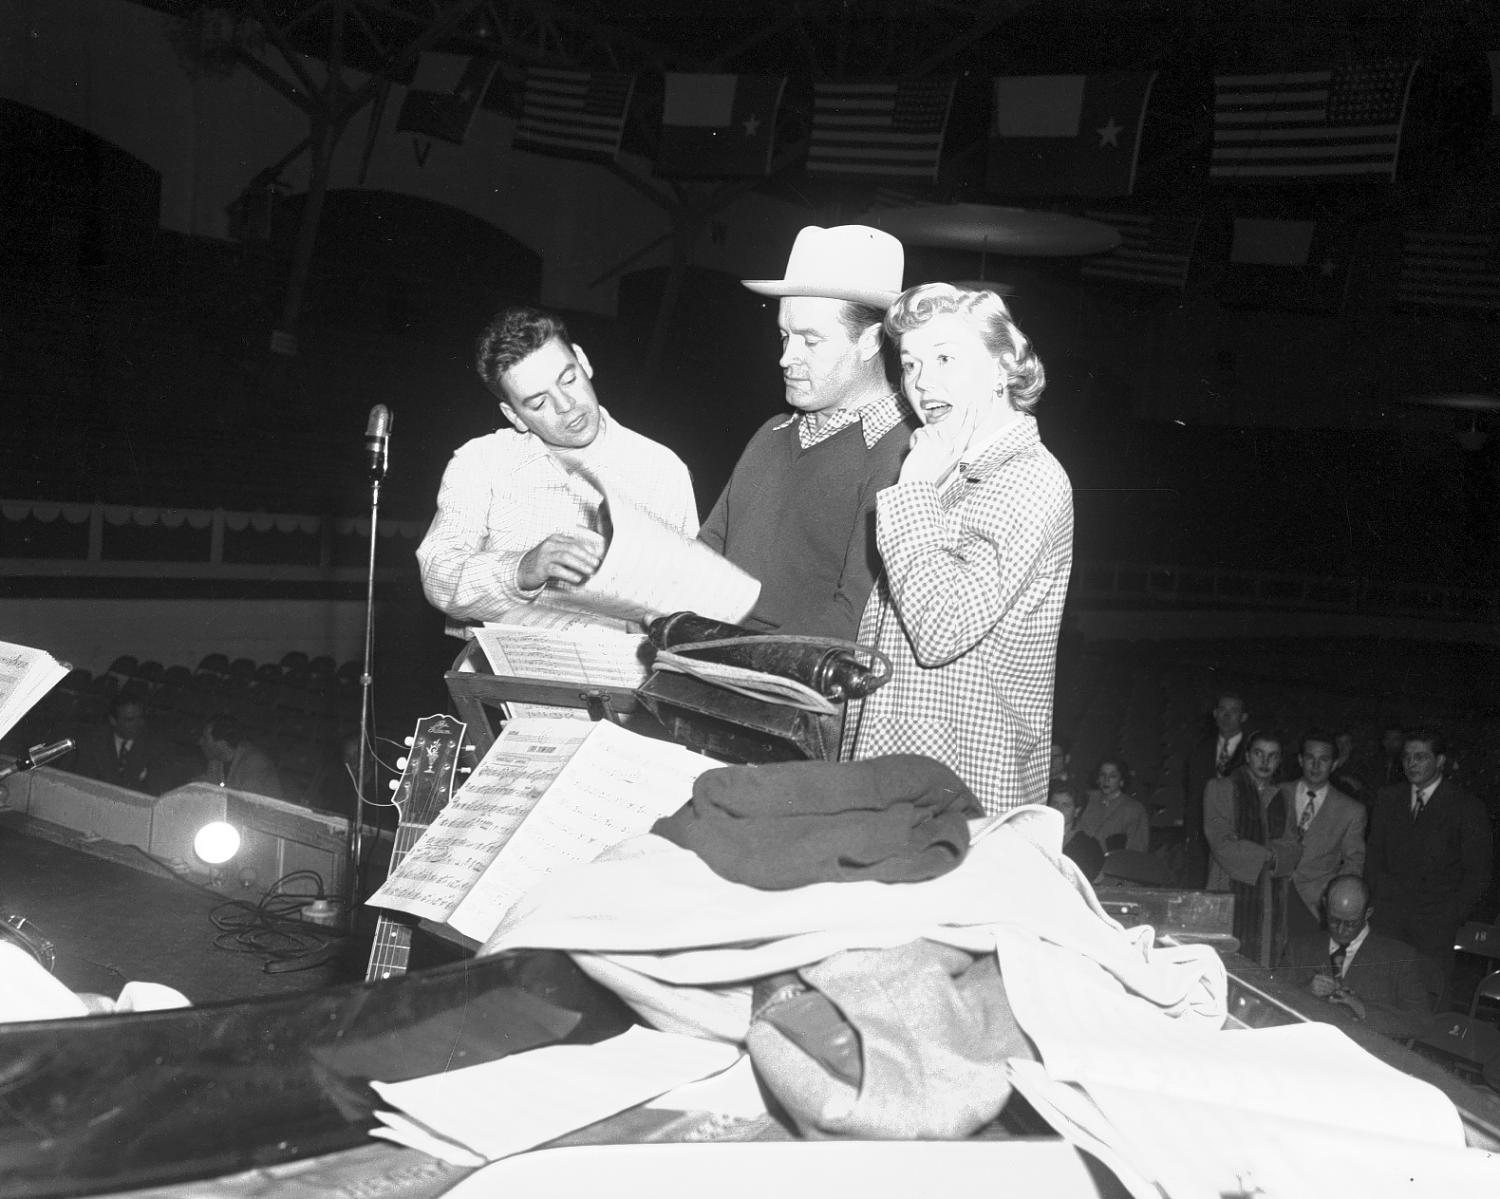 [Bob Hope, Doris Day, and Les Brown prepare for a show in Cowtown Coliseum]                                                                                                      [Sequence #]: 1 of 1